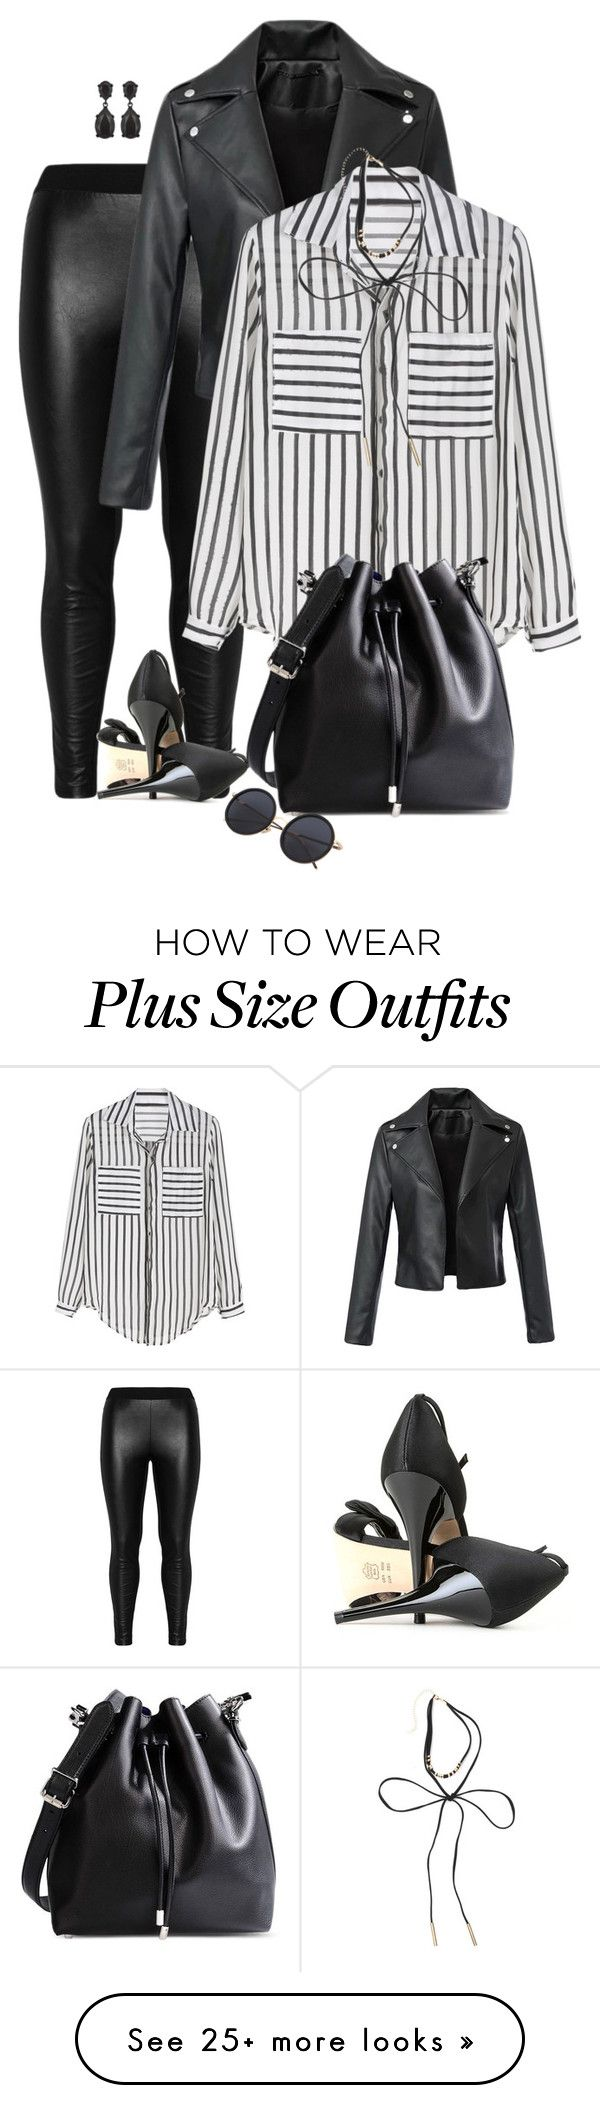 """Untitled #7205"" by lisa-holt on Polyvore featuring Zizzi, Proenza Schouler and Kenneth Jay Lane"